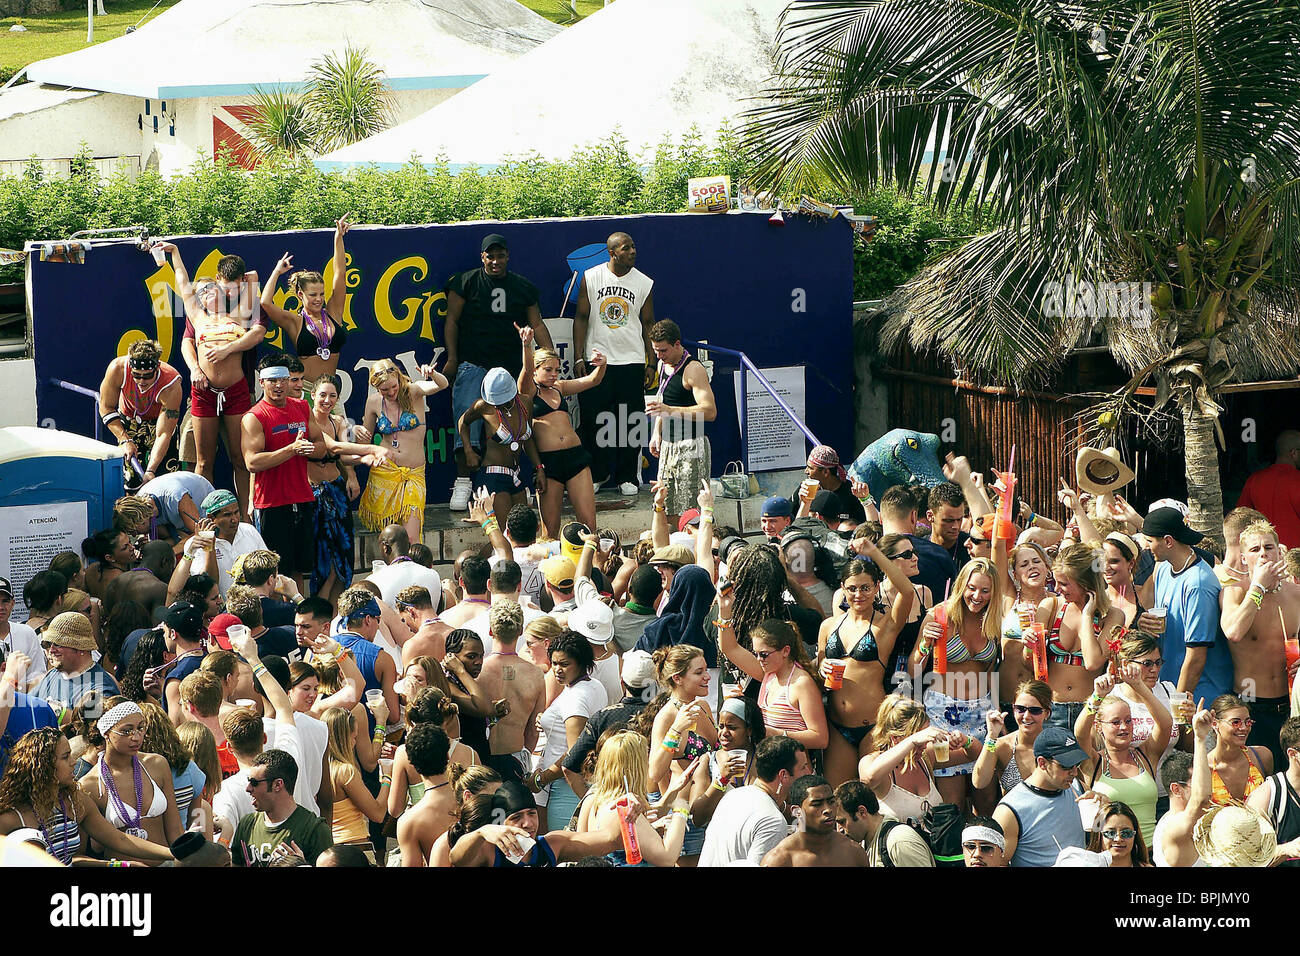 FASCHING-MOTTO-PARTIES DER REAL CANCUN (2003) Stockbild